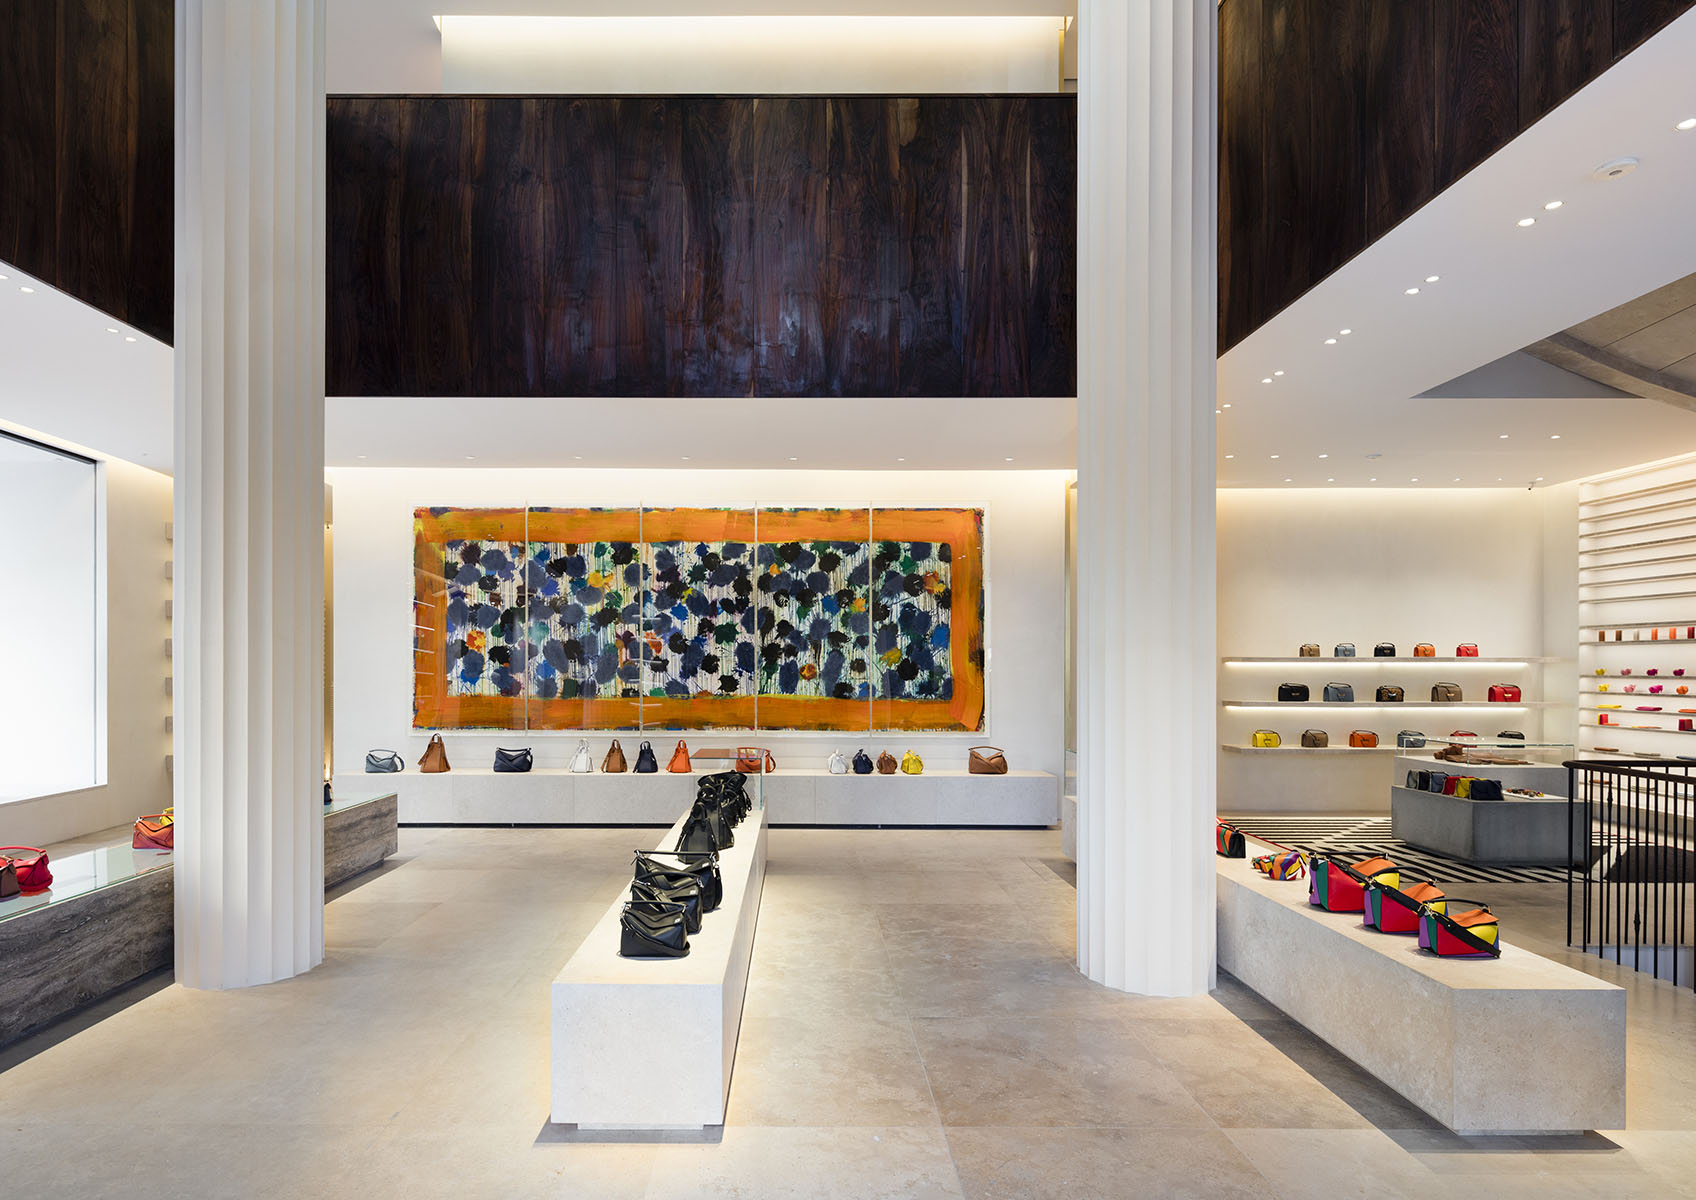 loewe-madrid-store-interior-the-impression-04